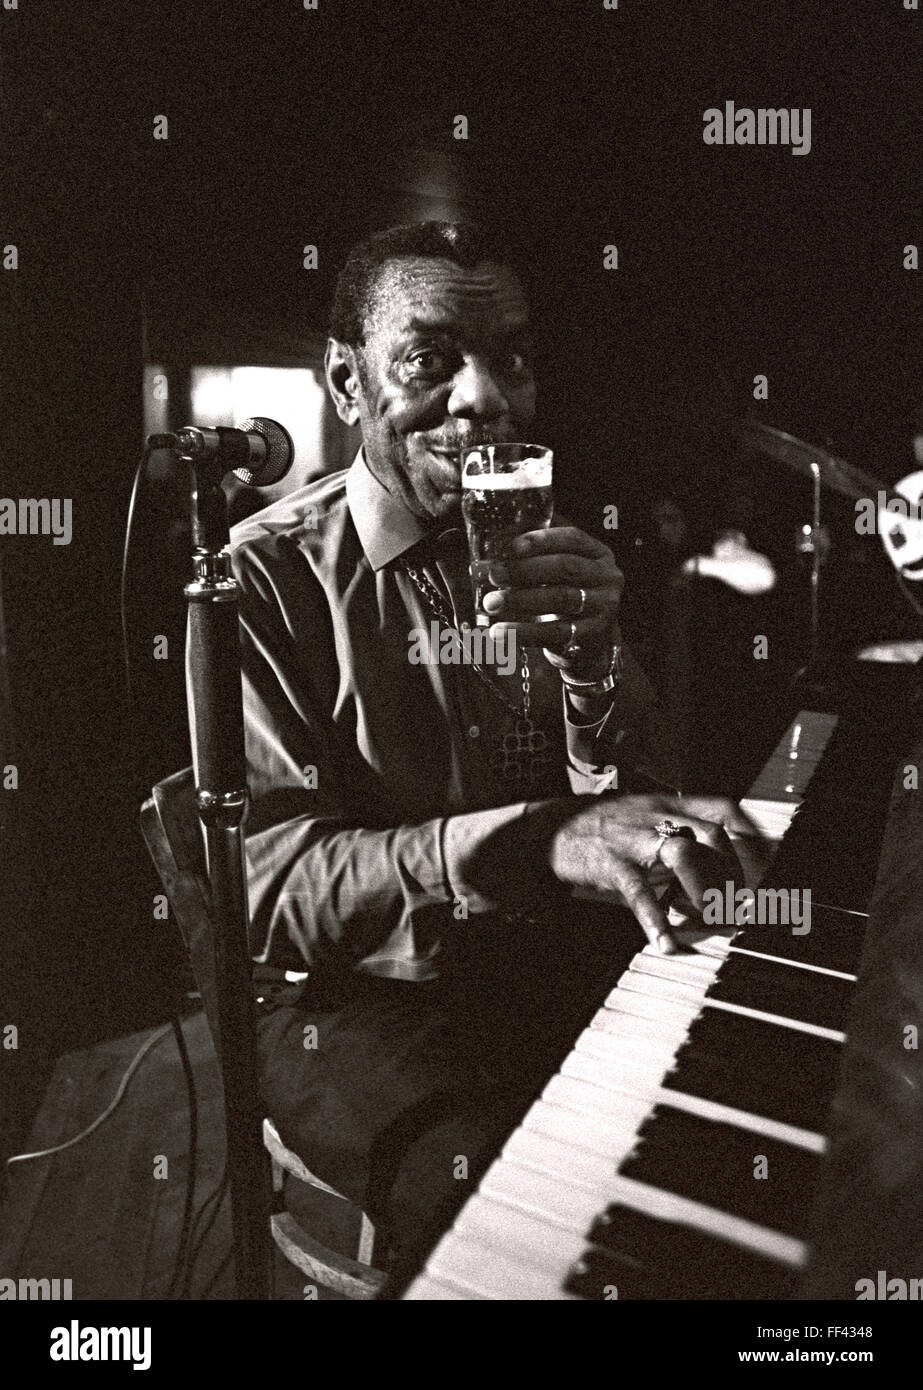 Champion Jack Dupree was a New Orleans blues and boogie